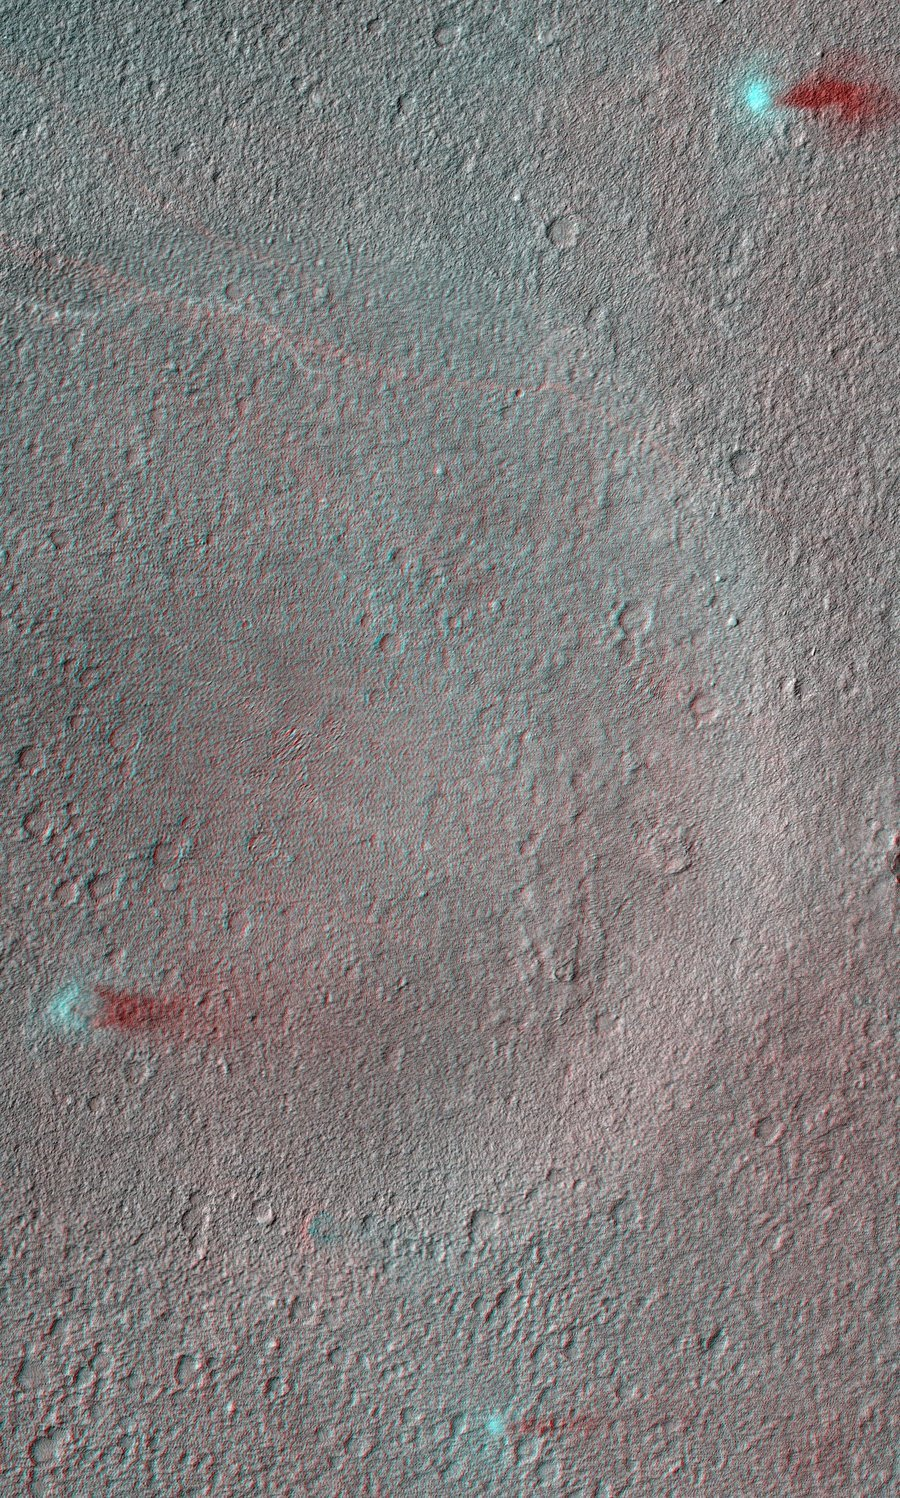 inothernews:  RULE OF THREES NASA's Mars Reconnaisance Orbiter captured this 3D image of three dust devils crisscrossing the Martian surface on February 11. (Photo via MSNBC)